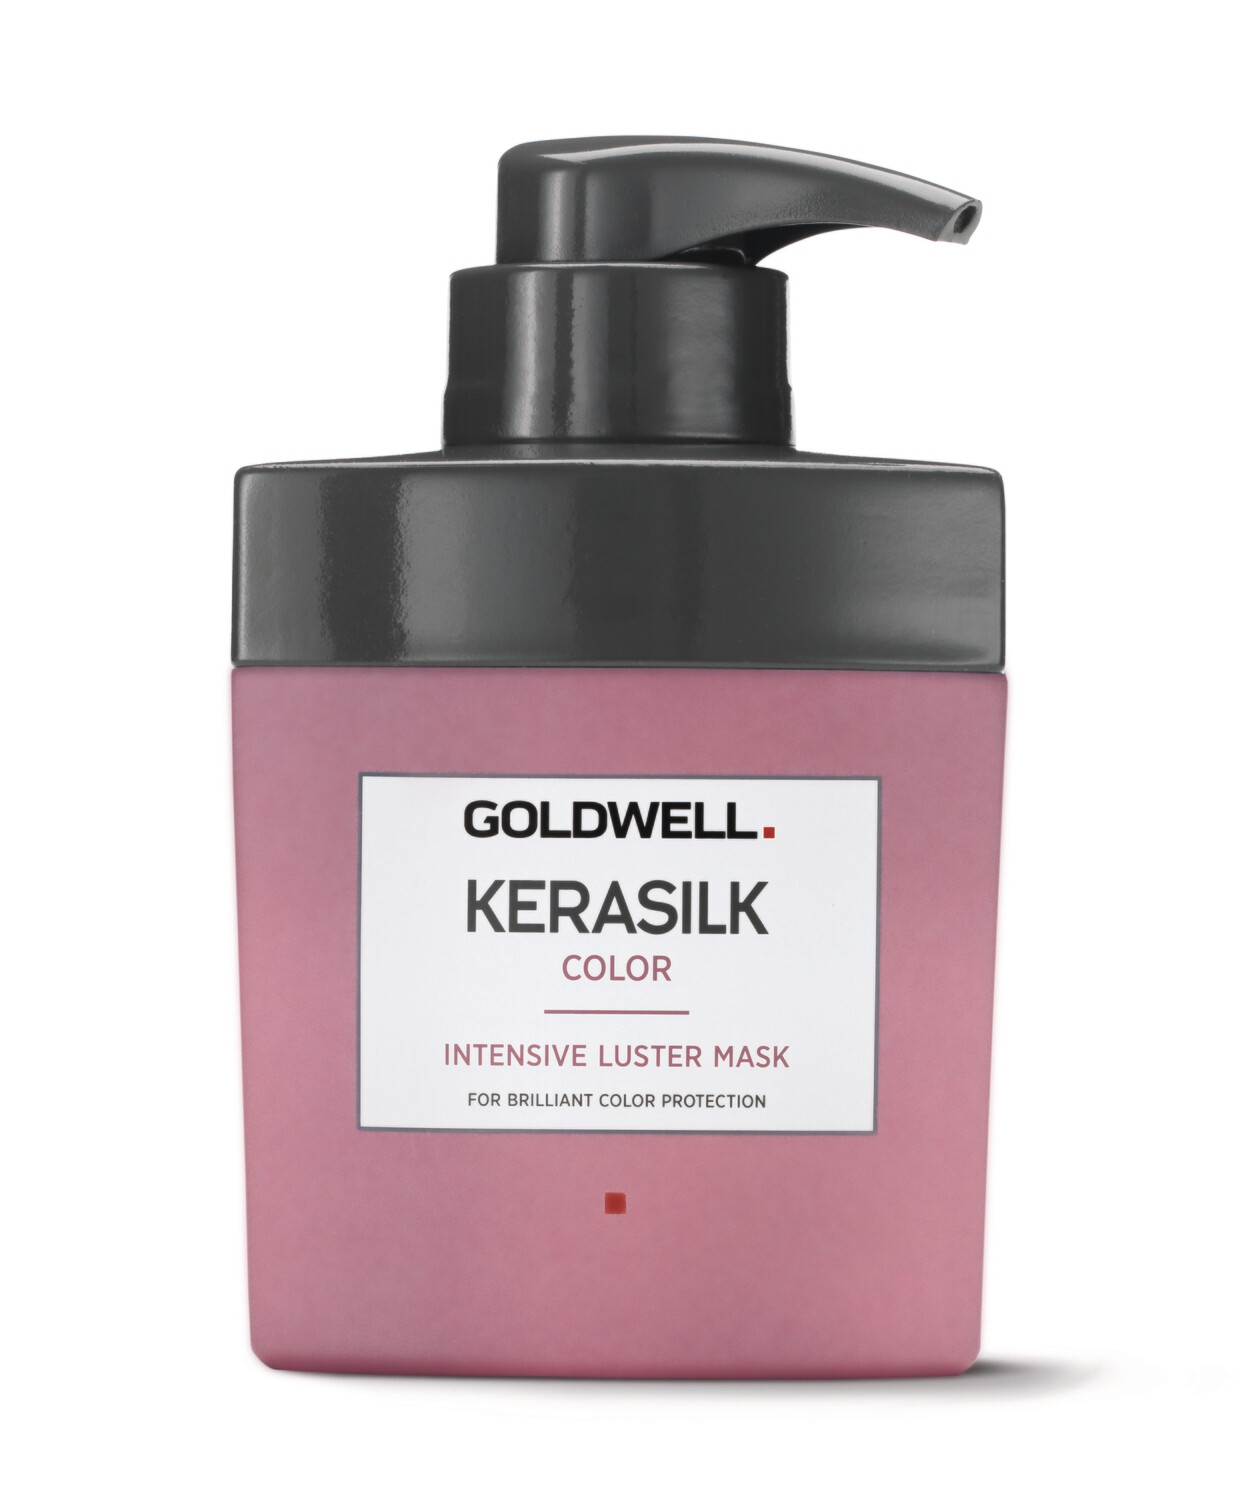 Goldwell Kerasilk Color Intensive Luster Mask 200 ml